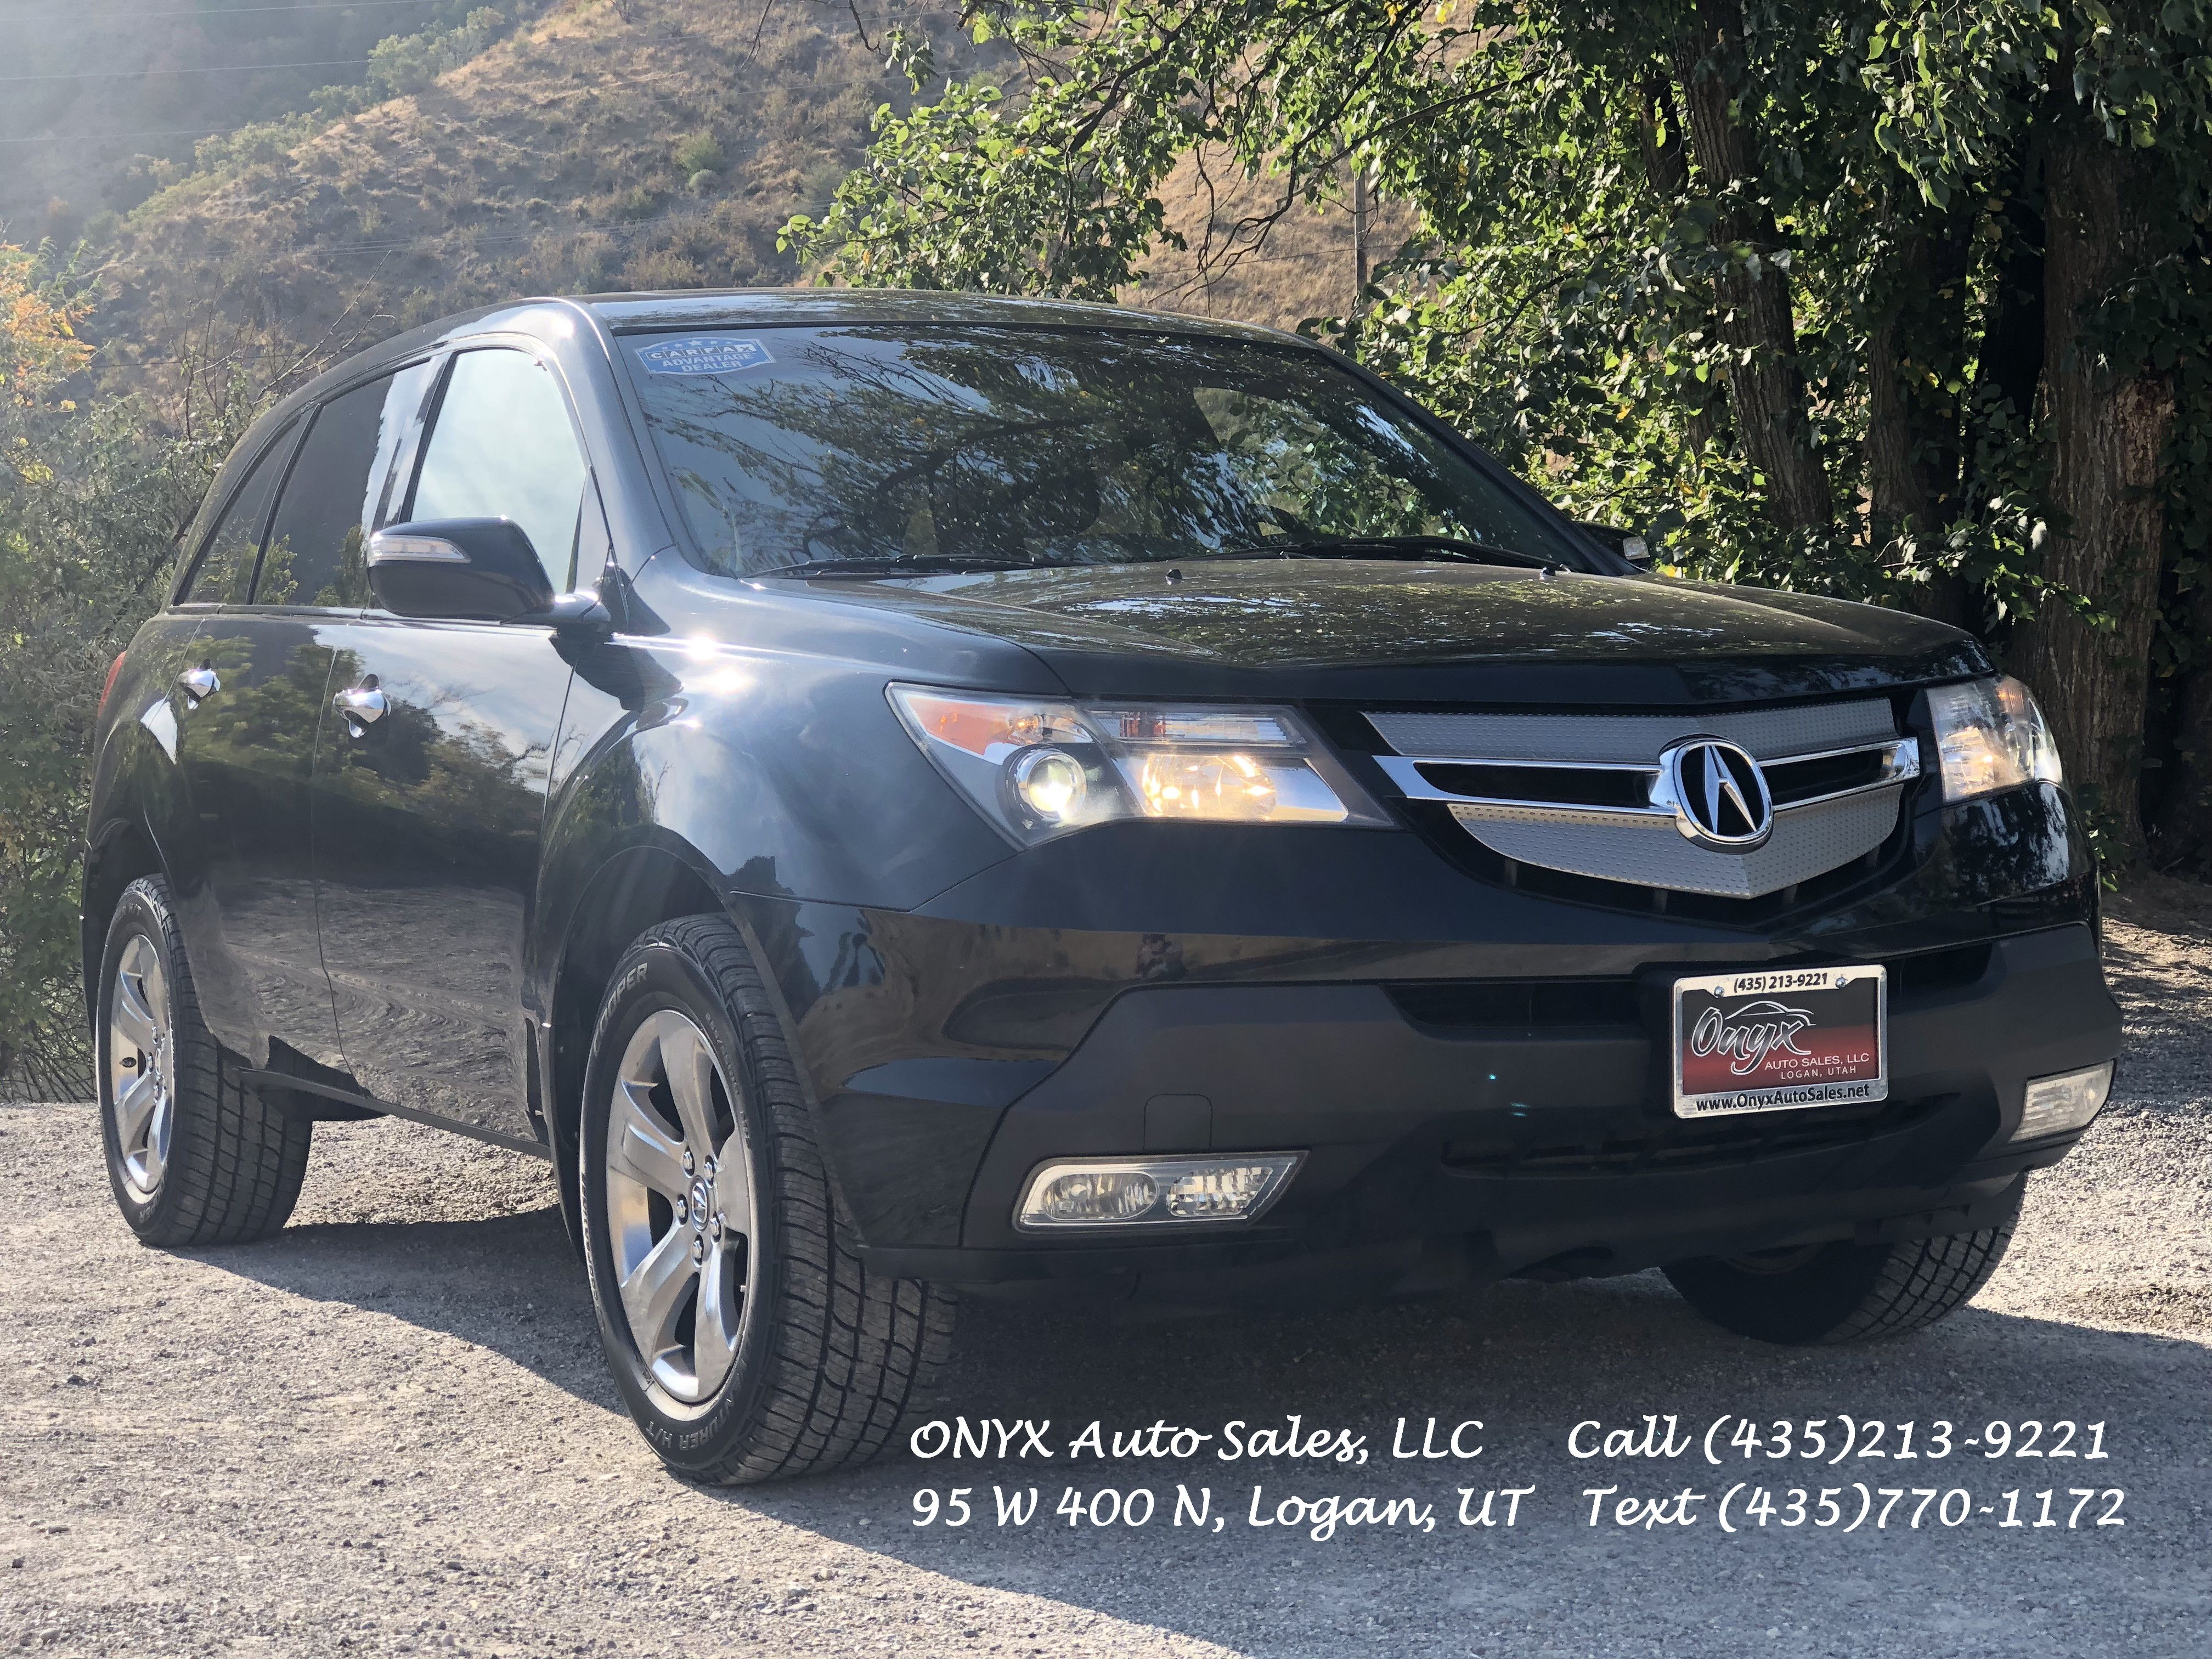 Used Cars Logan Utah >> 2007 Acura Mdx Navigation Dvd Great Condition Acura